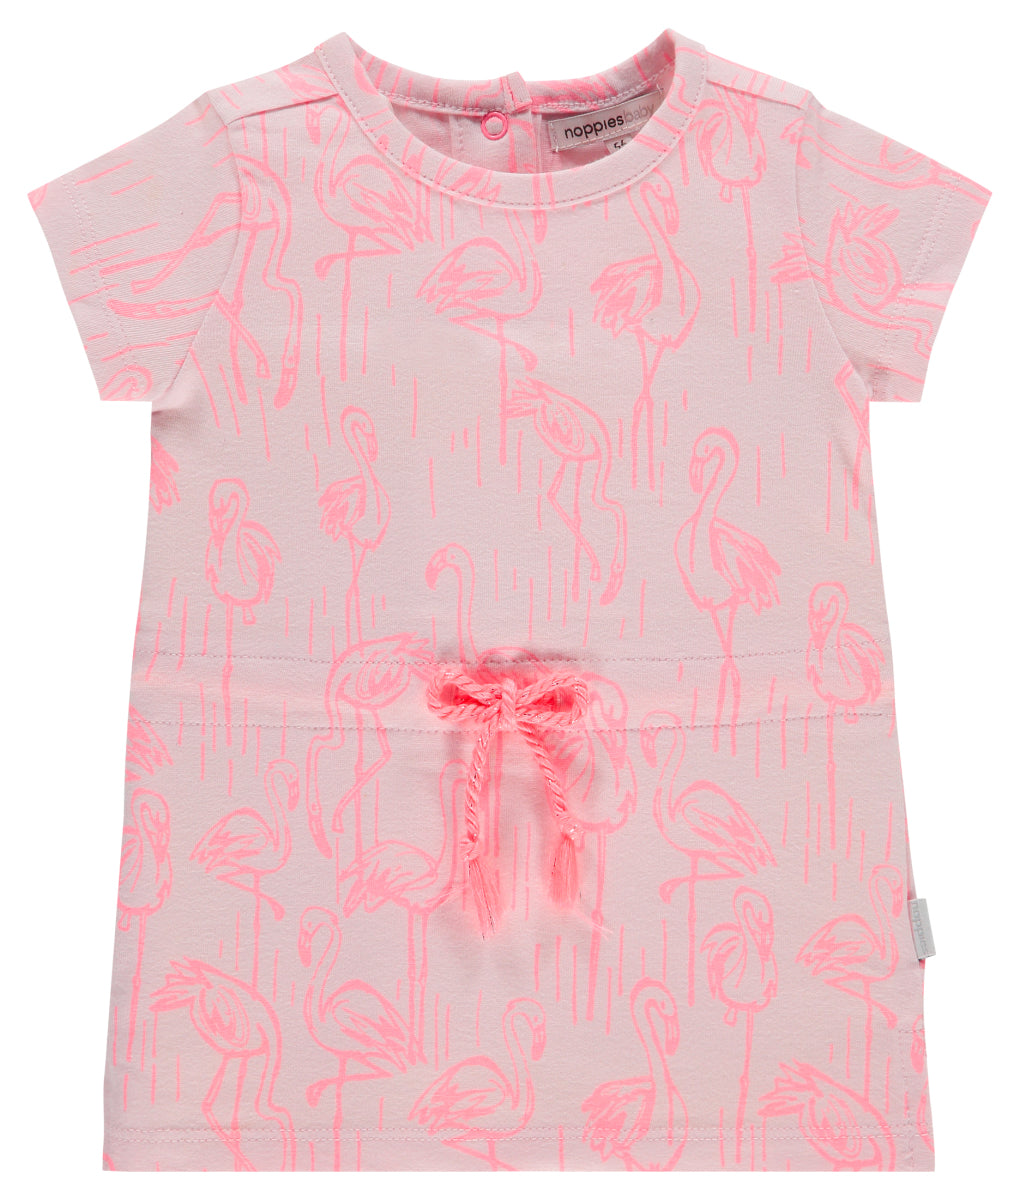 Noppies Pink Flamingo Tunic